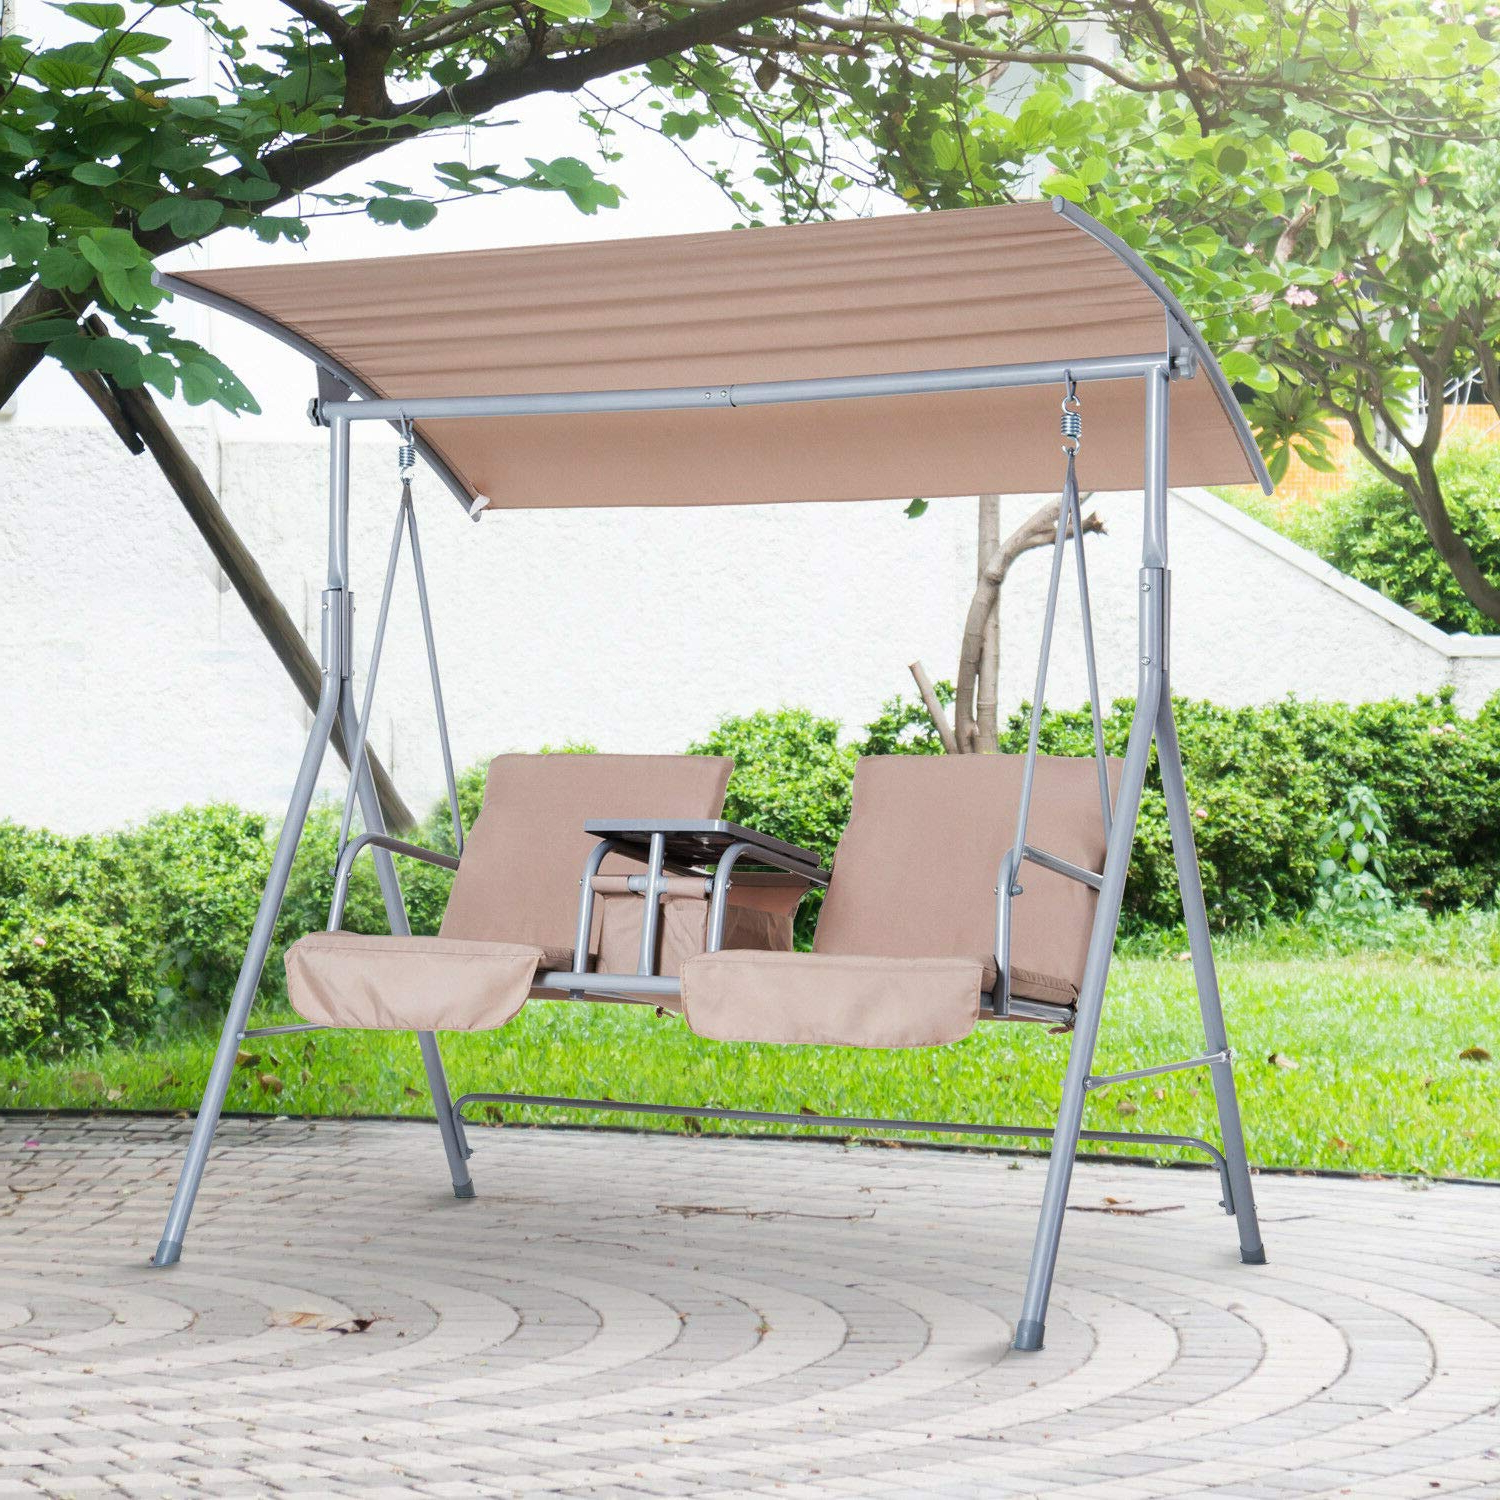 Best And Newest Amazon : Mb Campstar 2 Person Outdoor Patio Porch Swing Inside Canopy Patio Porch Swing With Stand (Gallery 1 of 30)